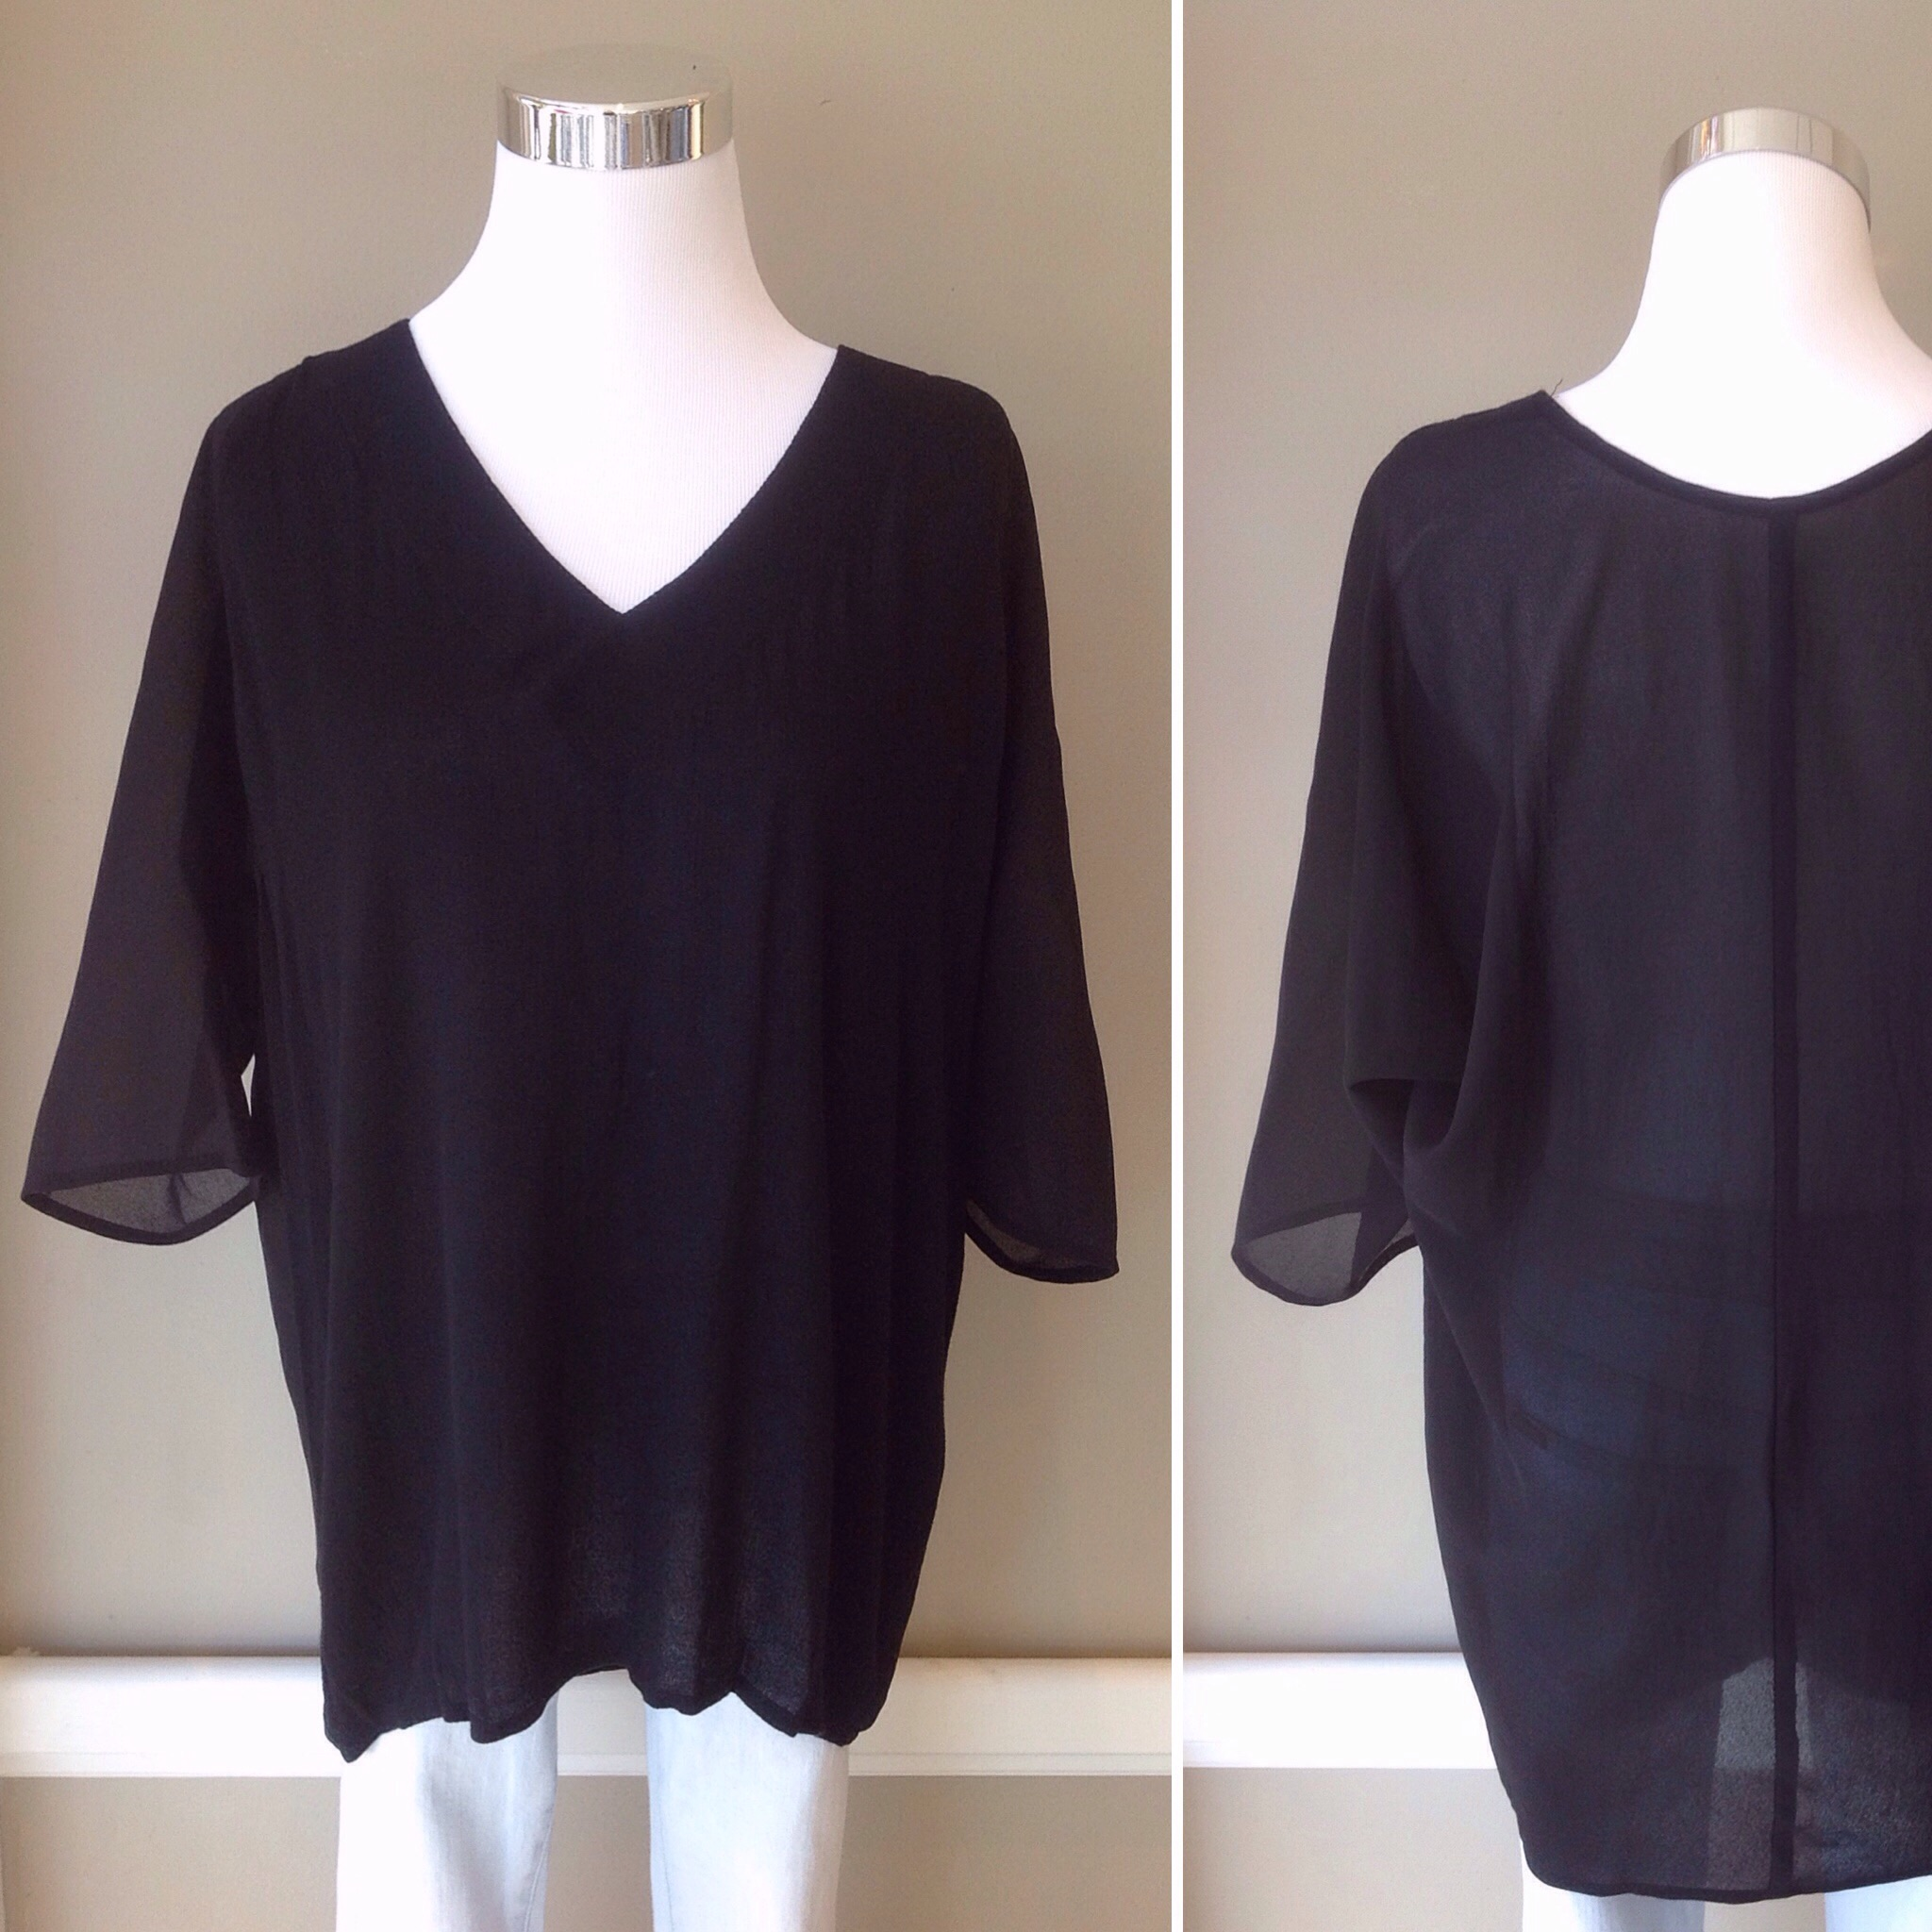 Woven black blouse with sheer back and high-low hem, $34